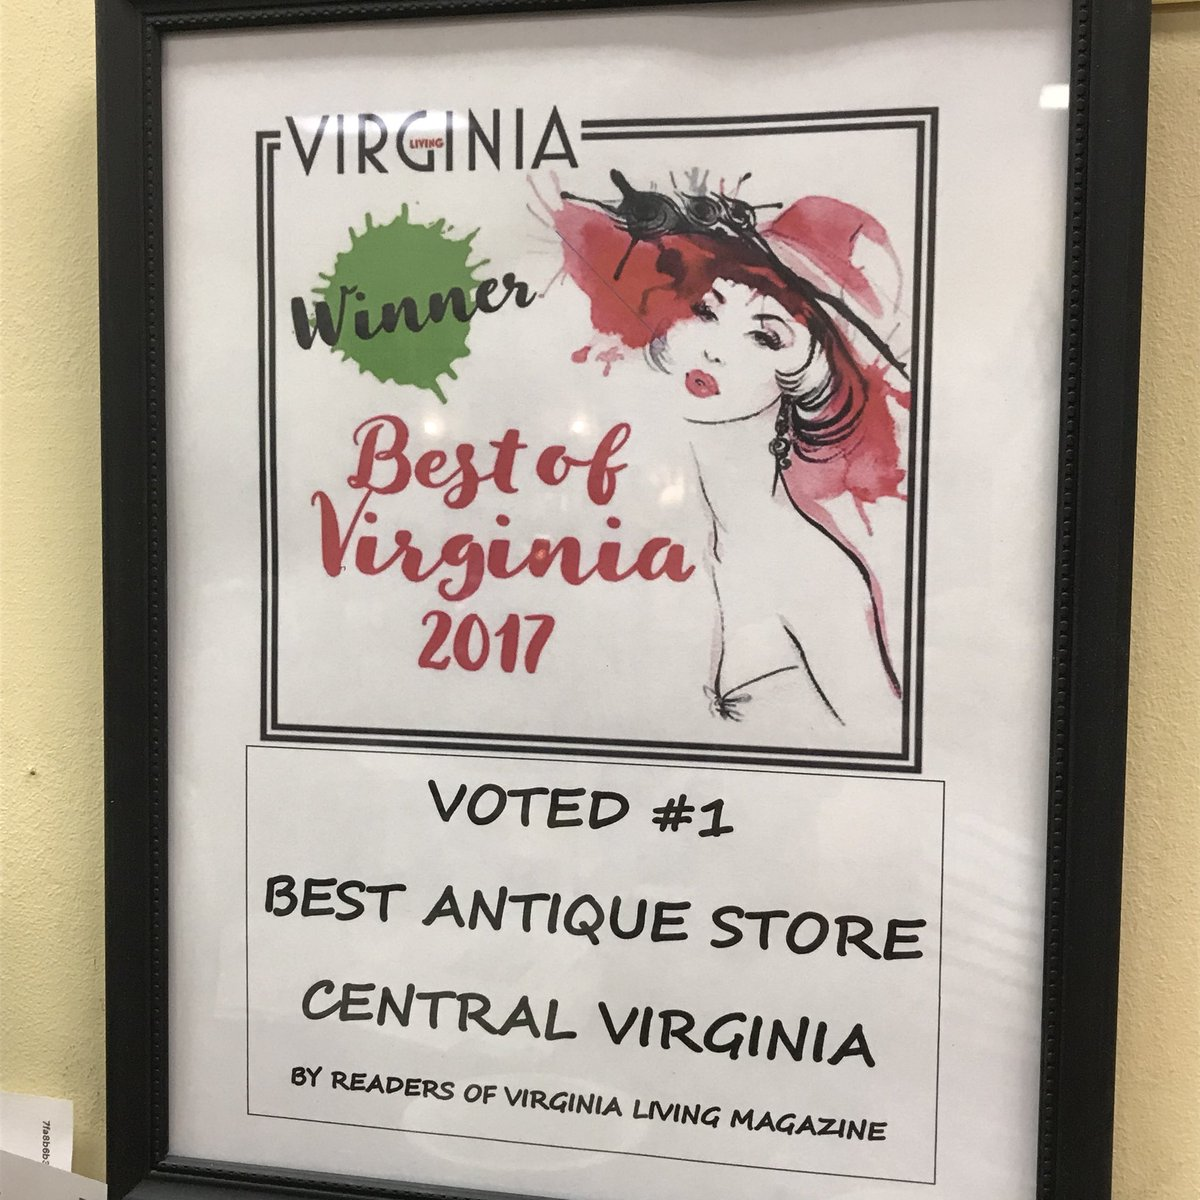 Buckingham antiques on twitter shop at central virginias 1 buckingham antiques on twitter shop at central virginias 1 antique store historic midlothian va is the place for antiques and food jeuxipadfo Image collections